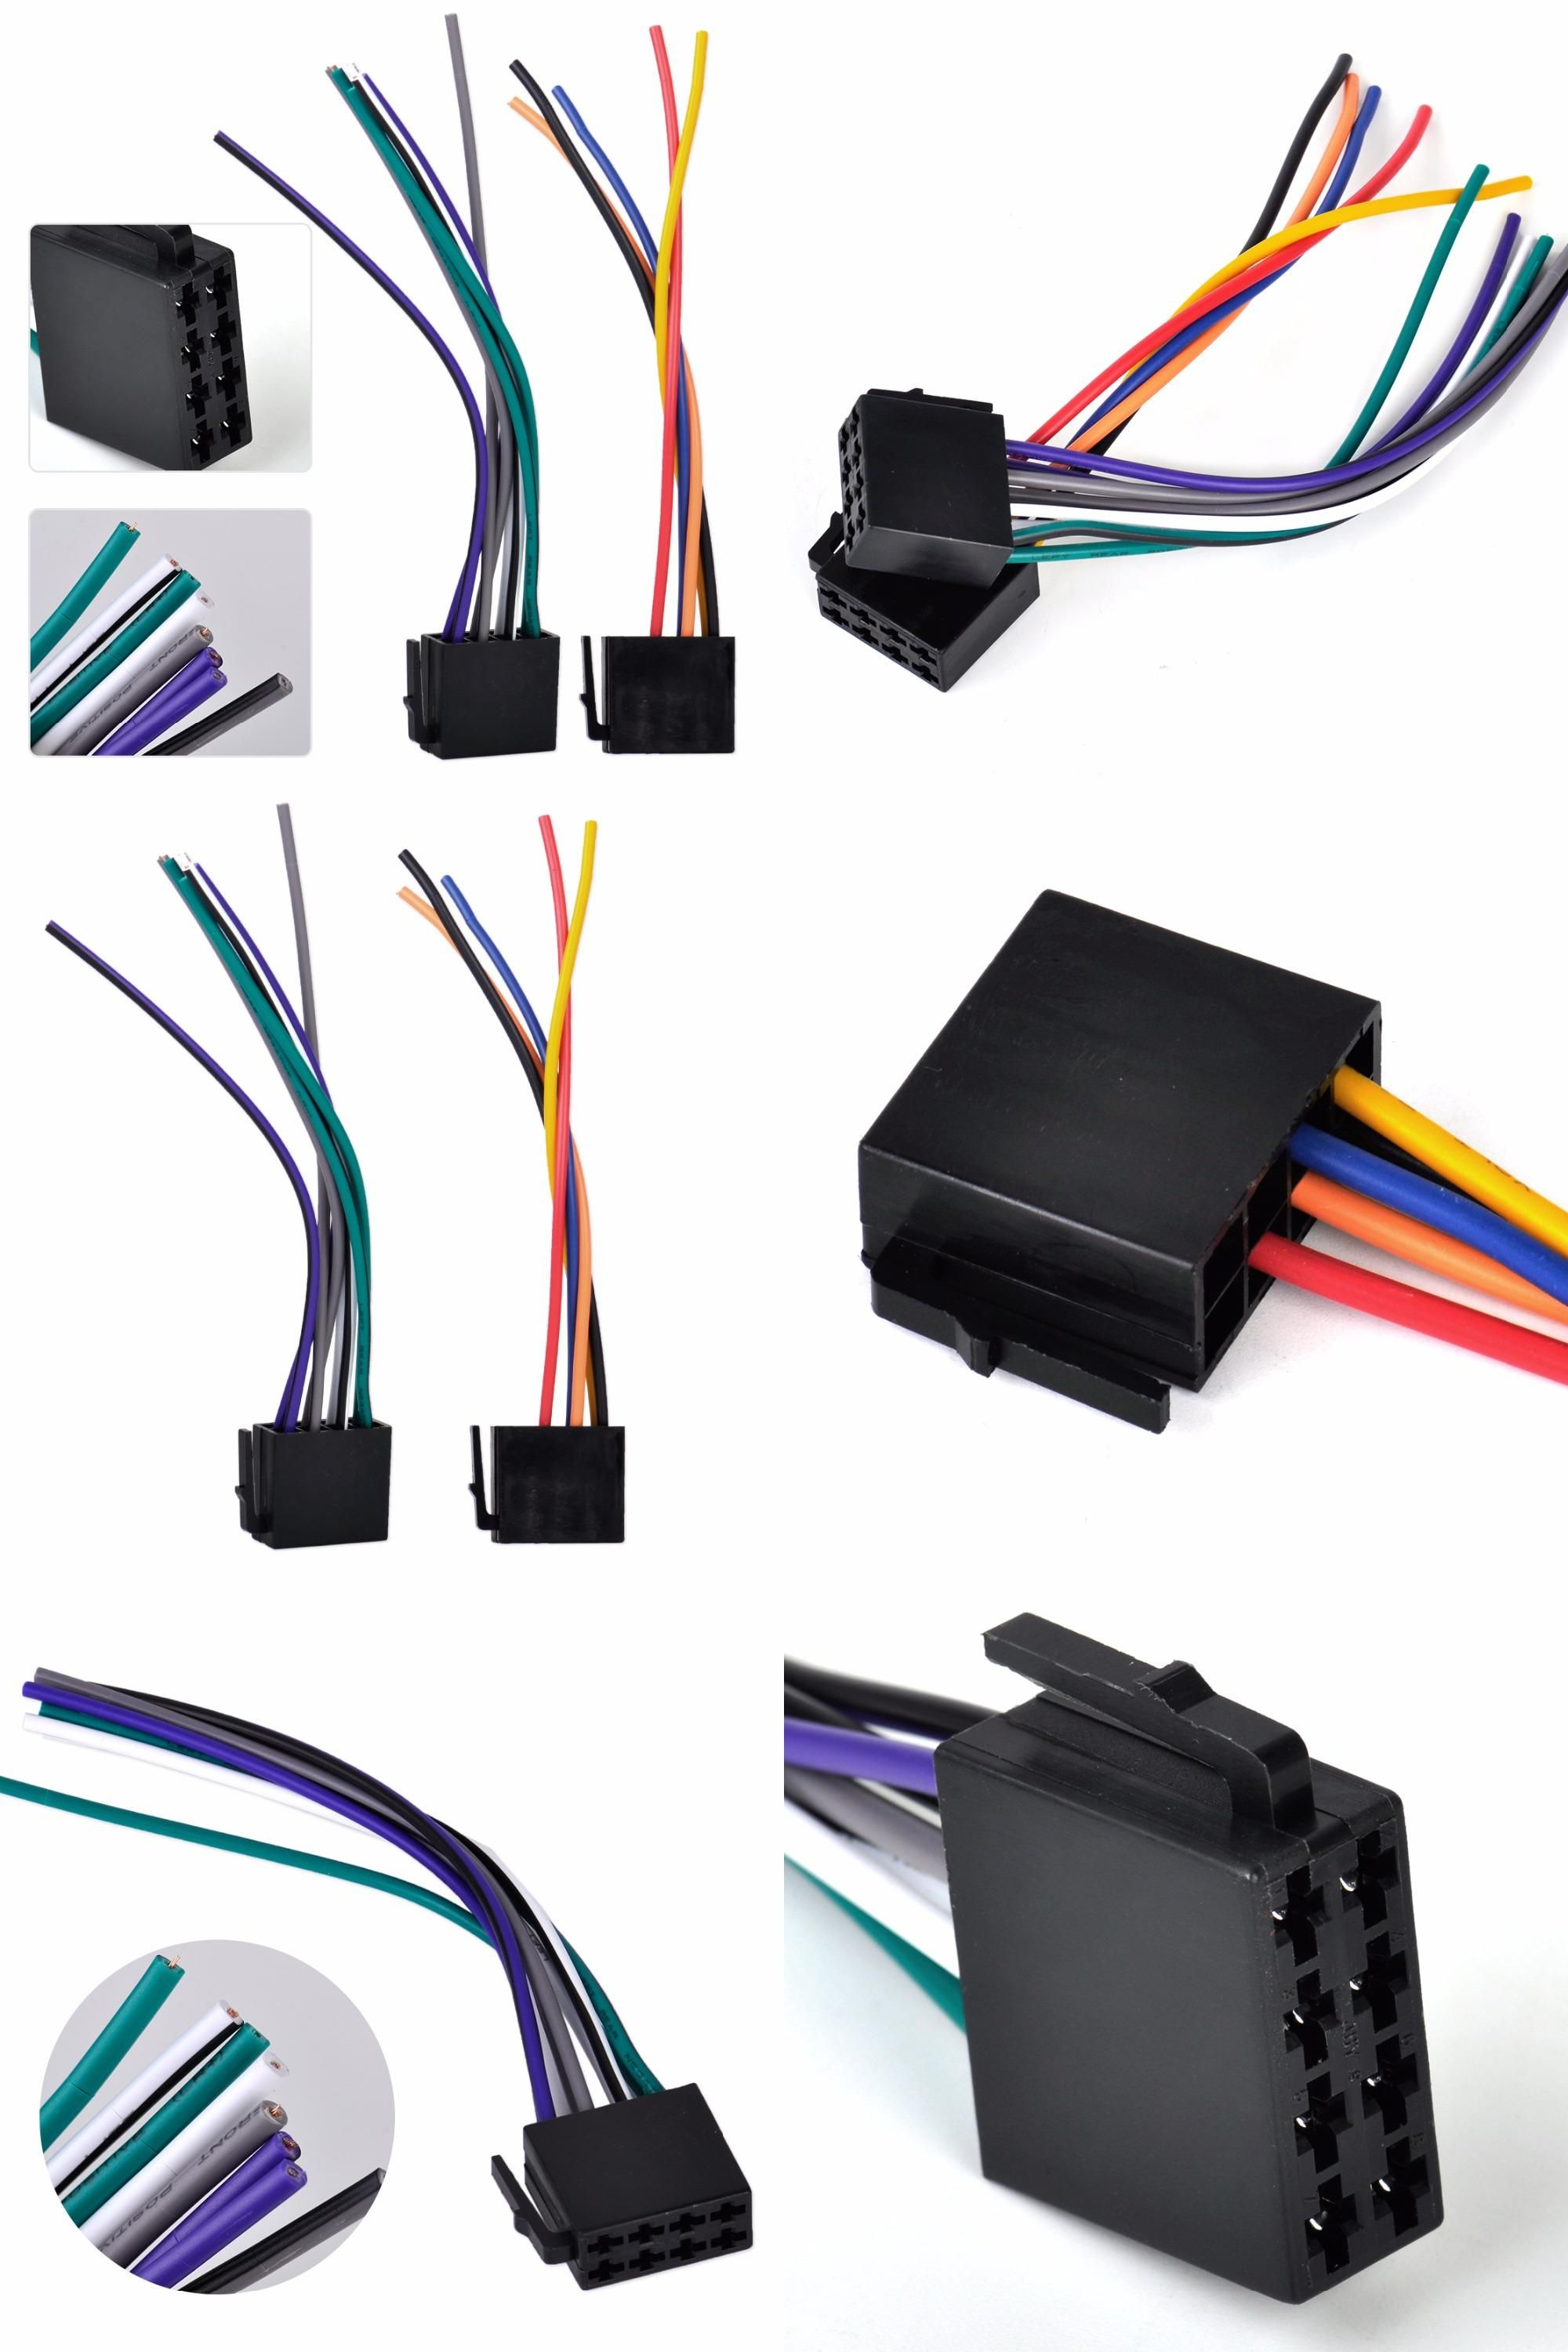 ac00bb6b251465f58005a5497ae8ab74 visit to buy] new universal iso wire harness female adapter car audio wiring harness kits at webbmarketing.co